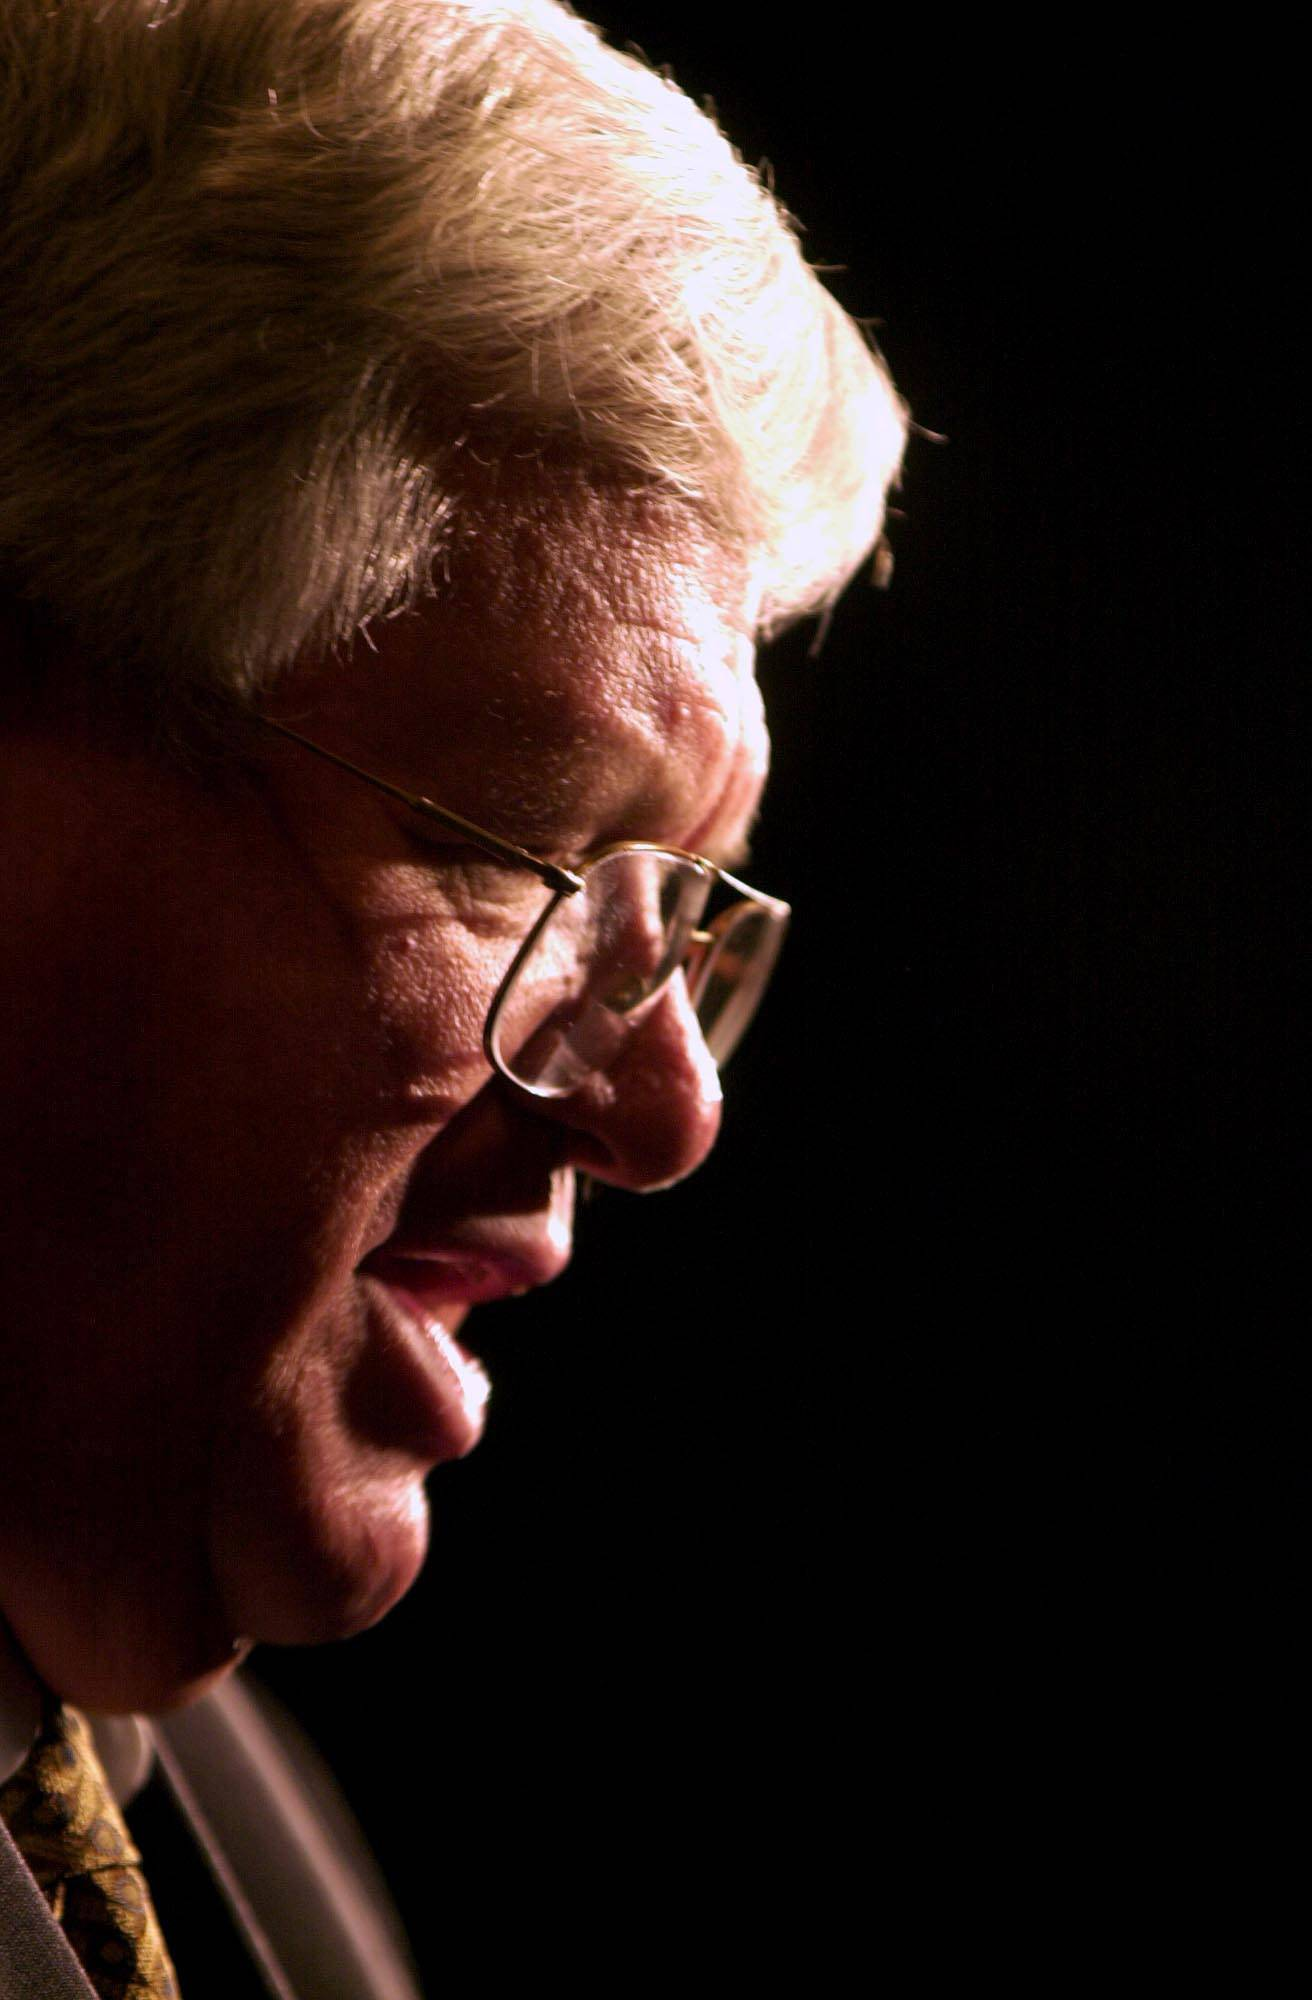 Former U.S. House Speaker Dennis Hastert faces a sentencing hearing later this month.